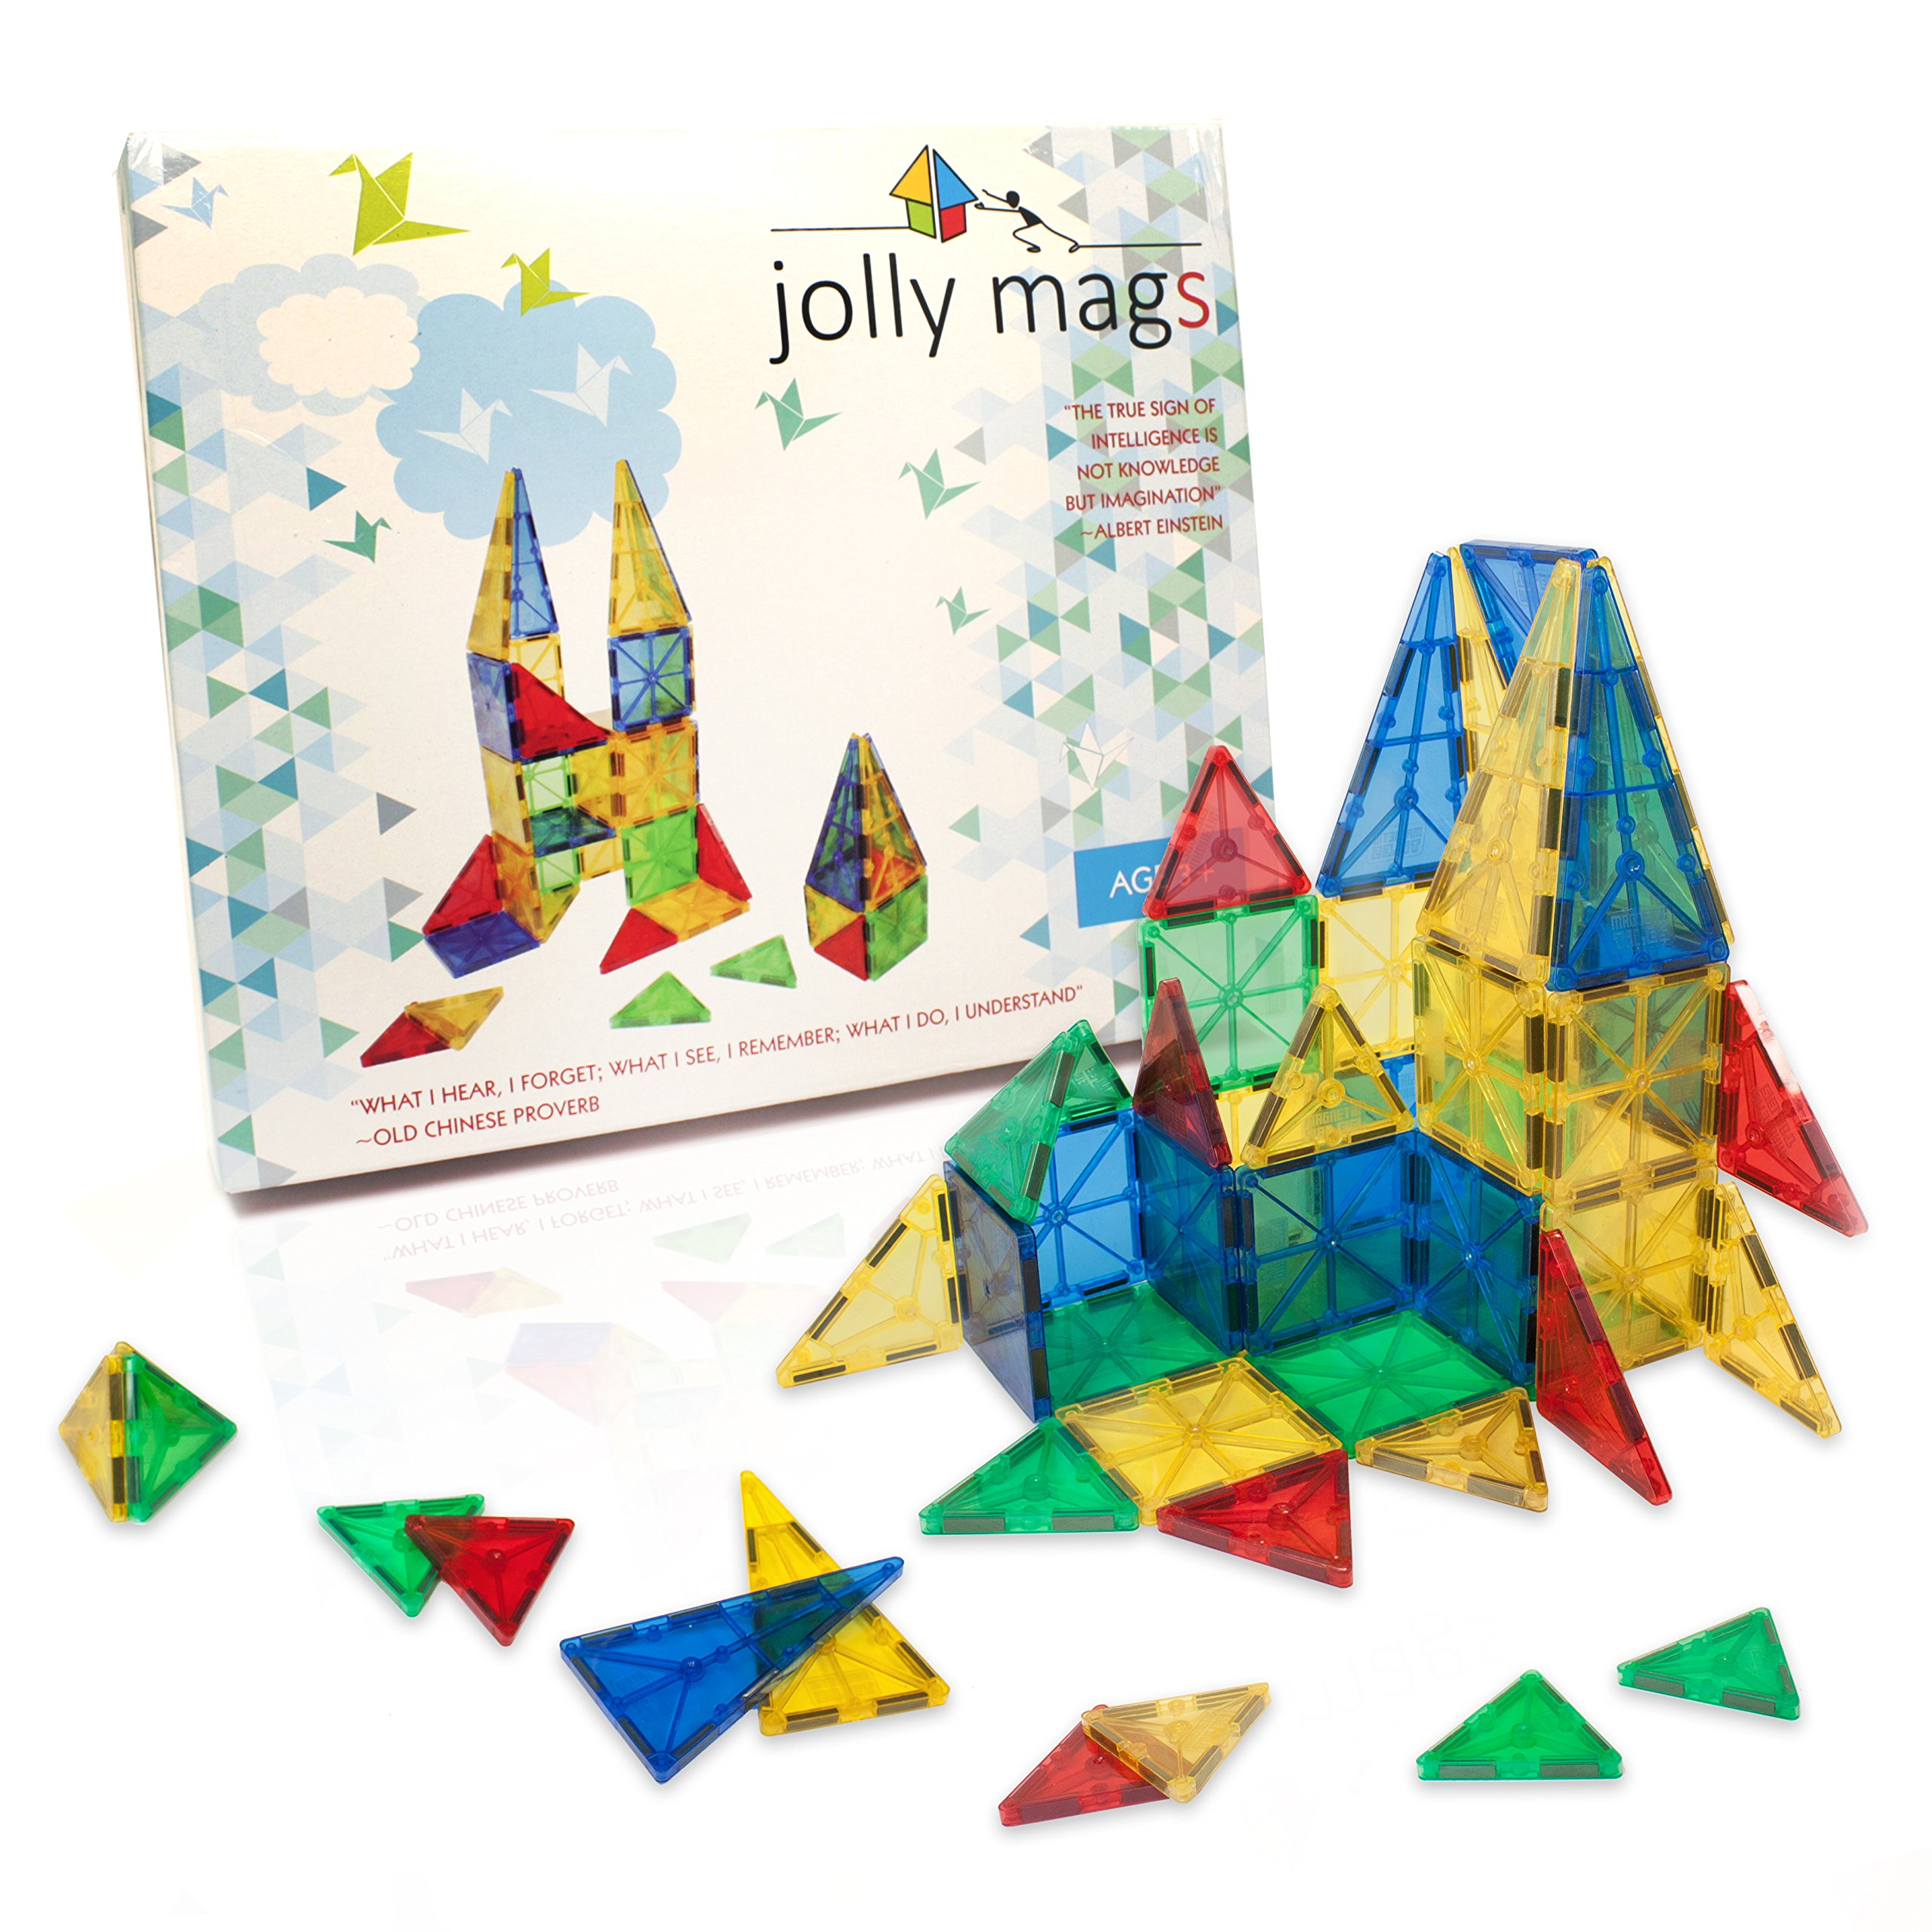 SAFETY CERTIFIED - Magnetic Tiles Jolly Mags Set - 3D Building Blocks Toy with Magnets for Kids - Best for Stacking - Clear Color 32 Pcs Set